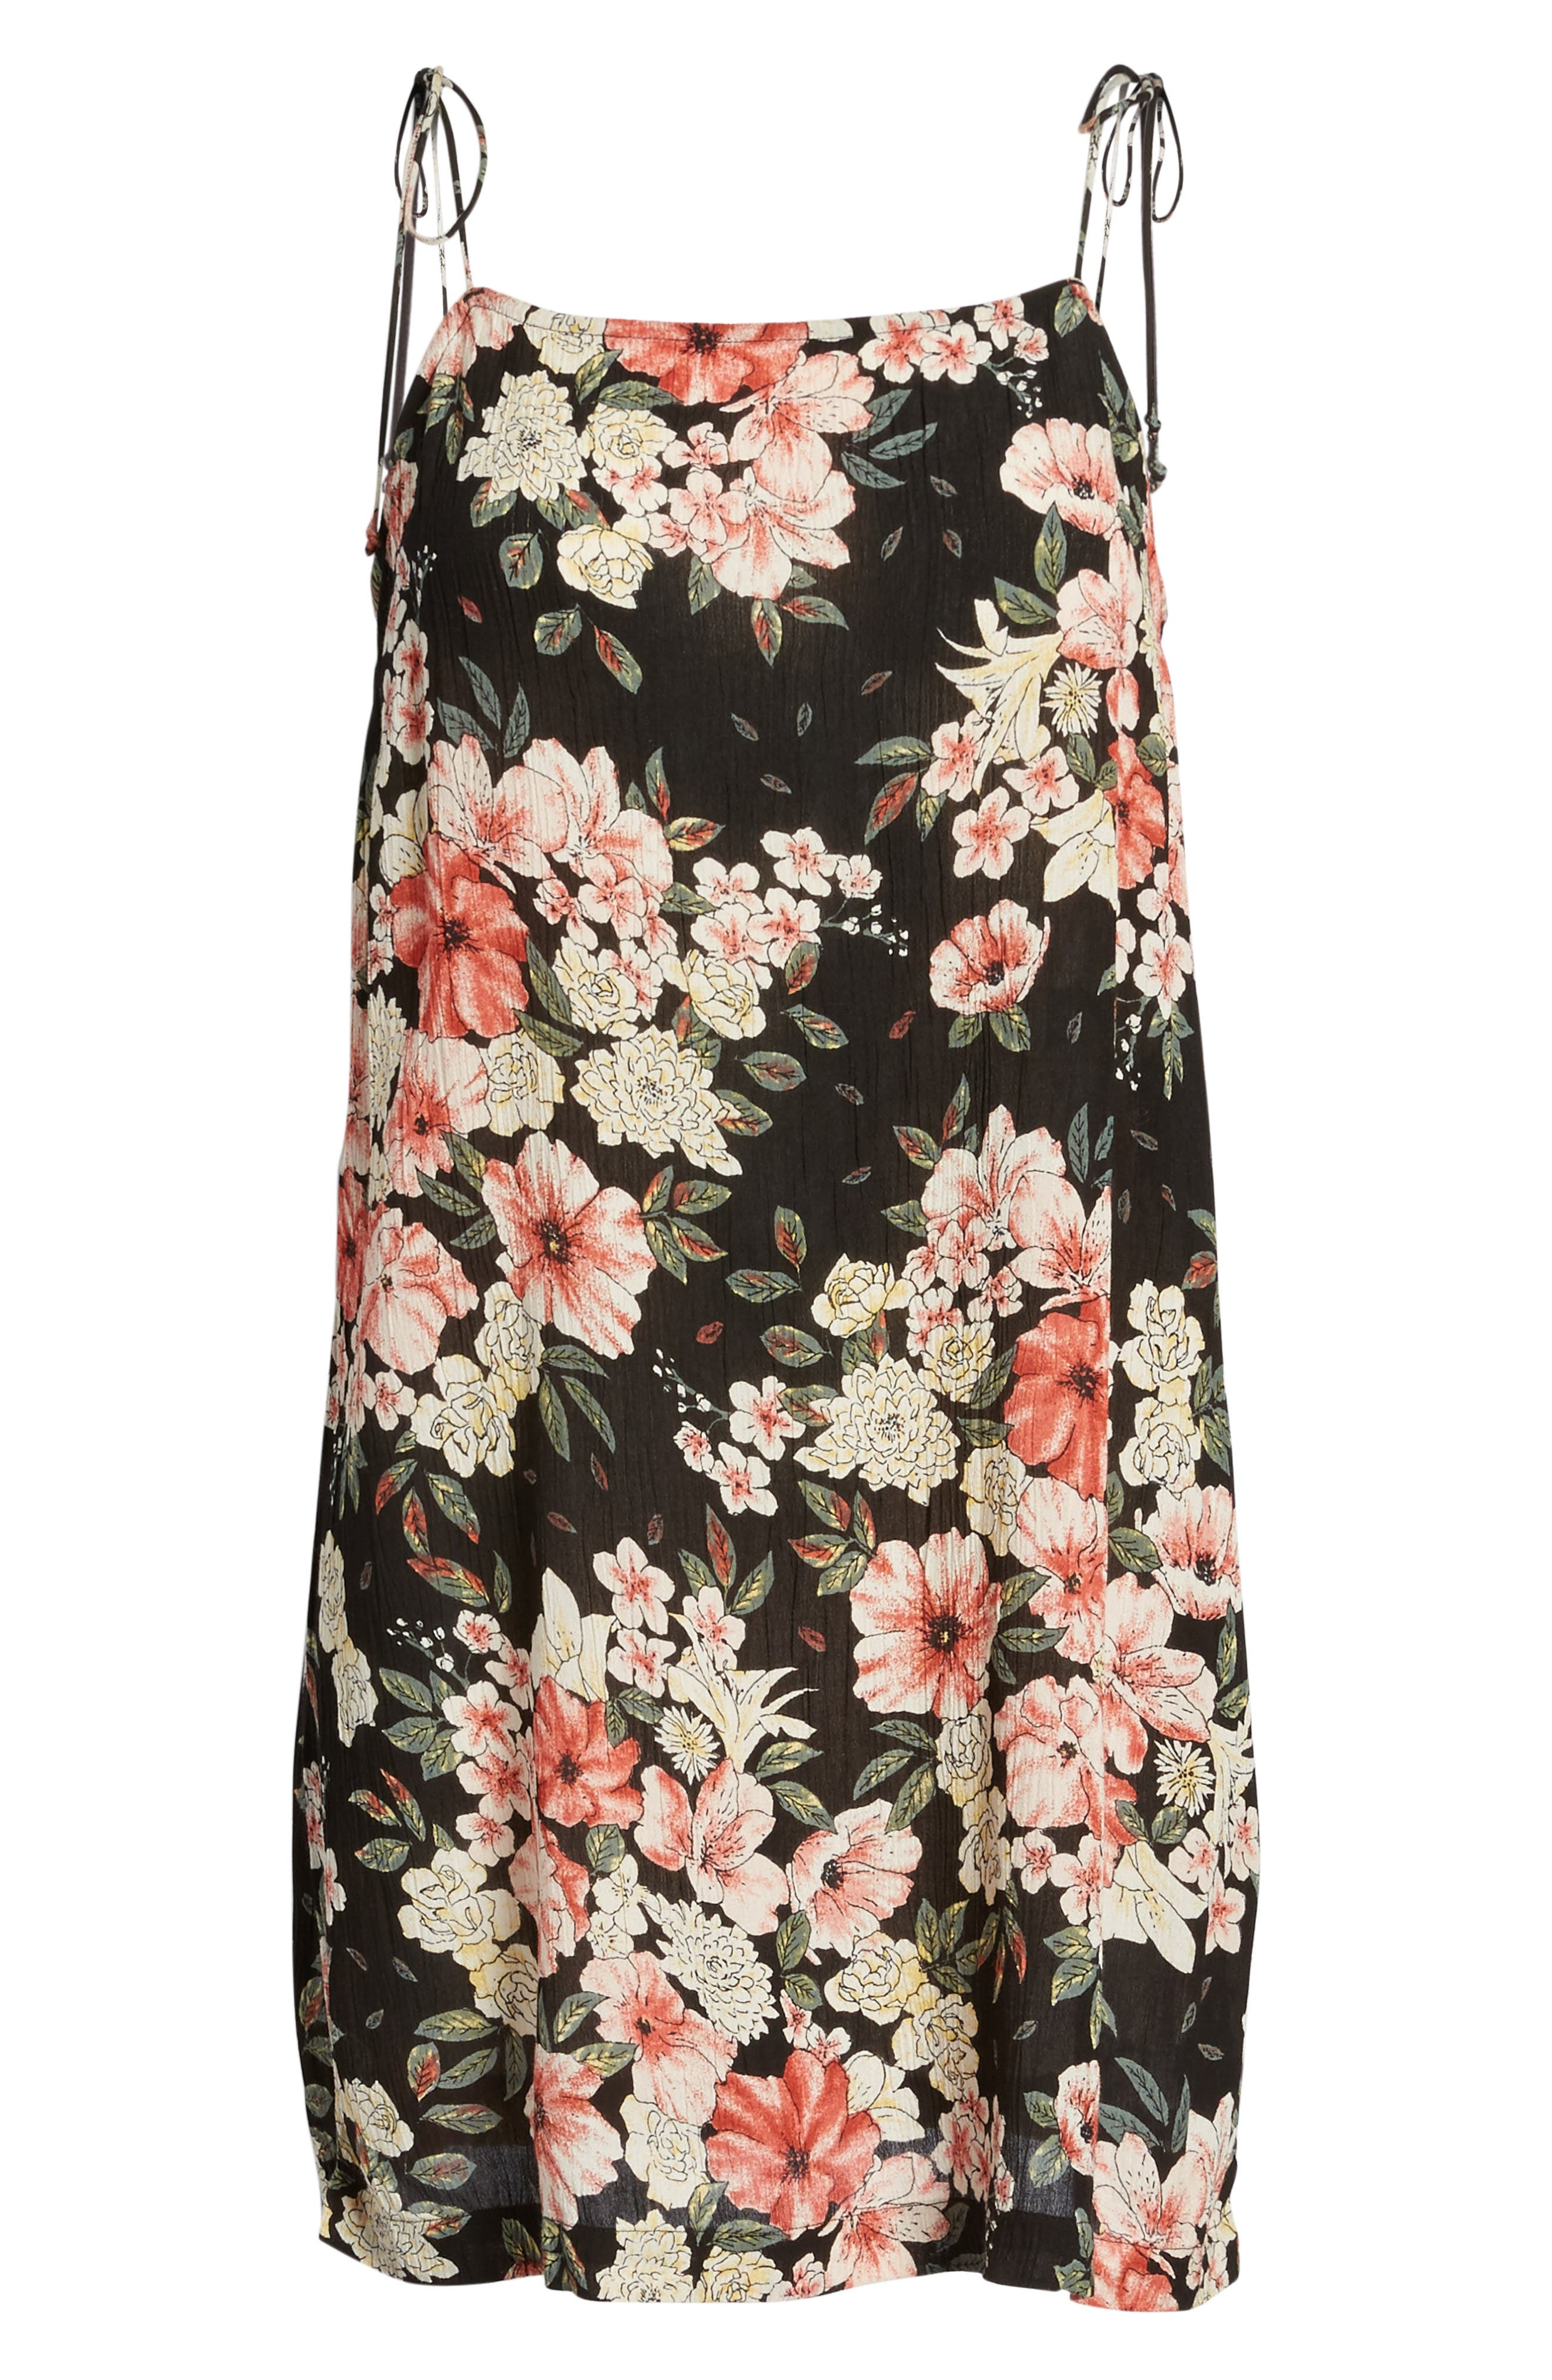 Nights Out Floral Slipdress,                             Alternate thumbnail 6, color,                             Black